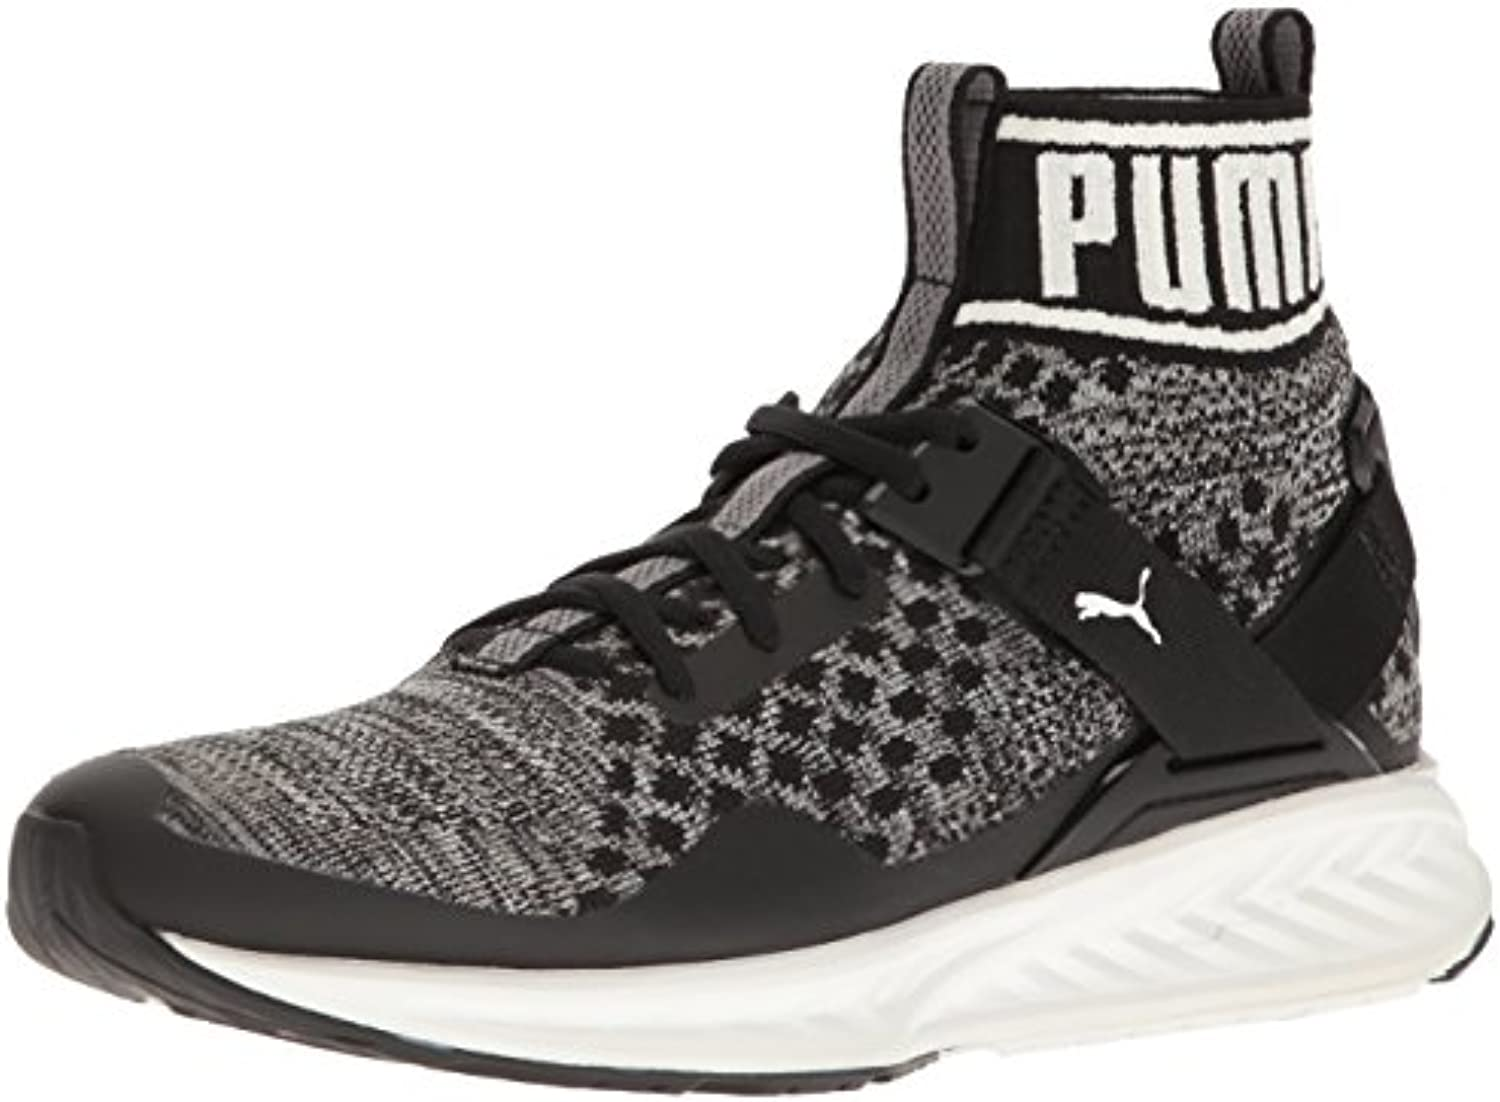 Zapatillas de deporte Ignite Evoknit, Puma Black / Quiet Shade / Puma White, 13 M US